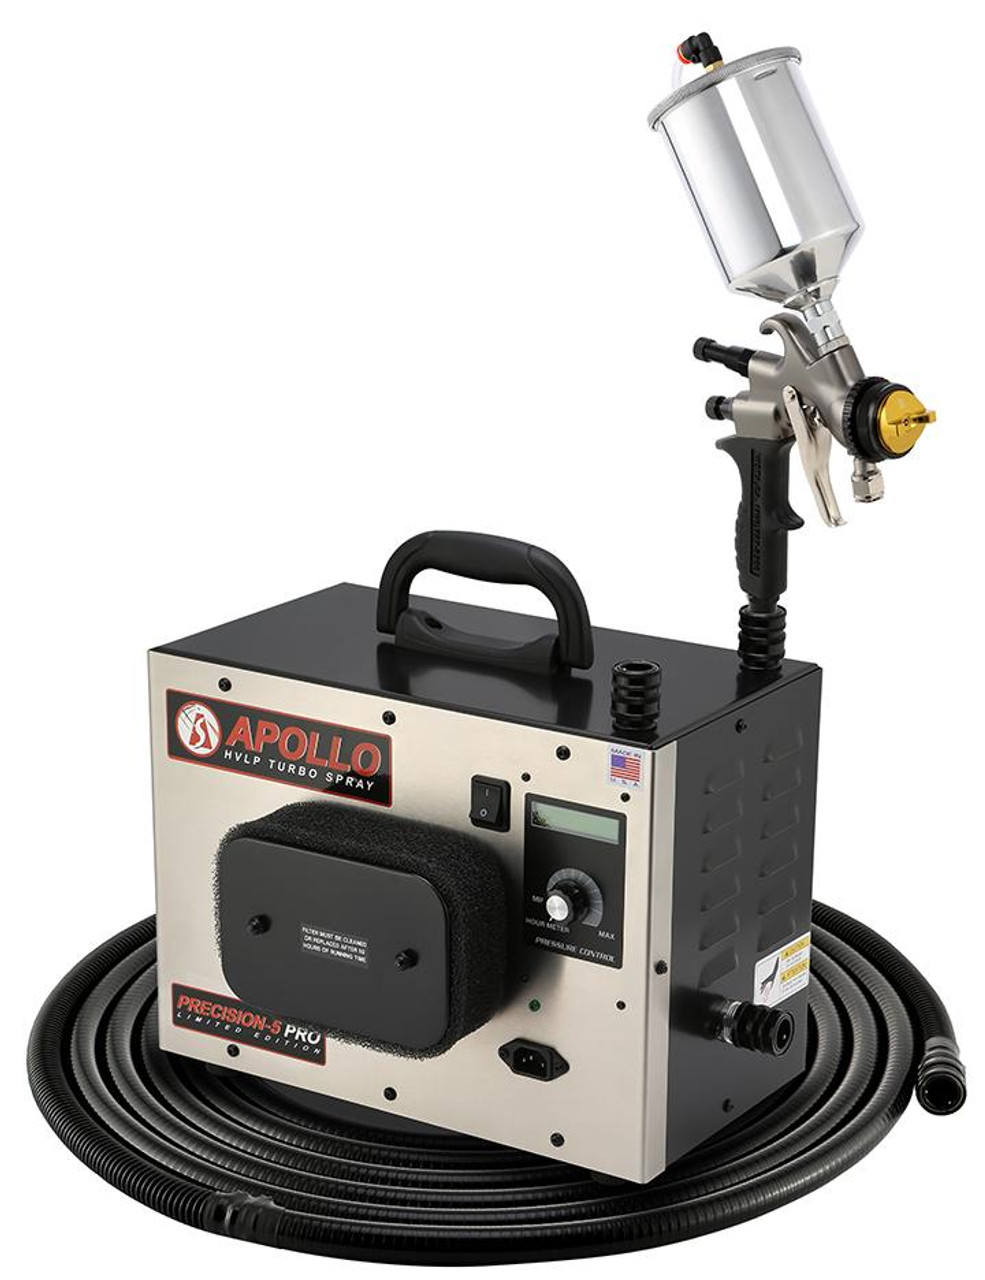 """Apollo - 5-Stage Precision 5 Pro LE; 120 volt motor, with internal bleed, Includes 32"""" Air Flex Hose, A7700GT-600 Spray Gun  A5034A 600cc Gravity Feed cup & Accessories (PSPROLE11077006)"""